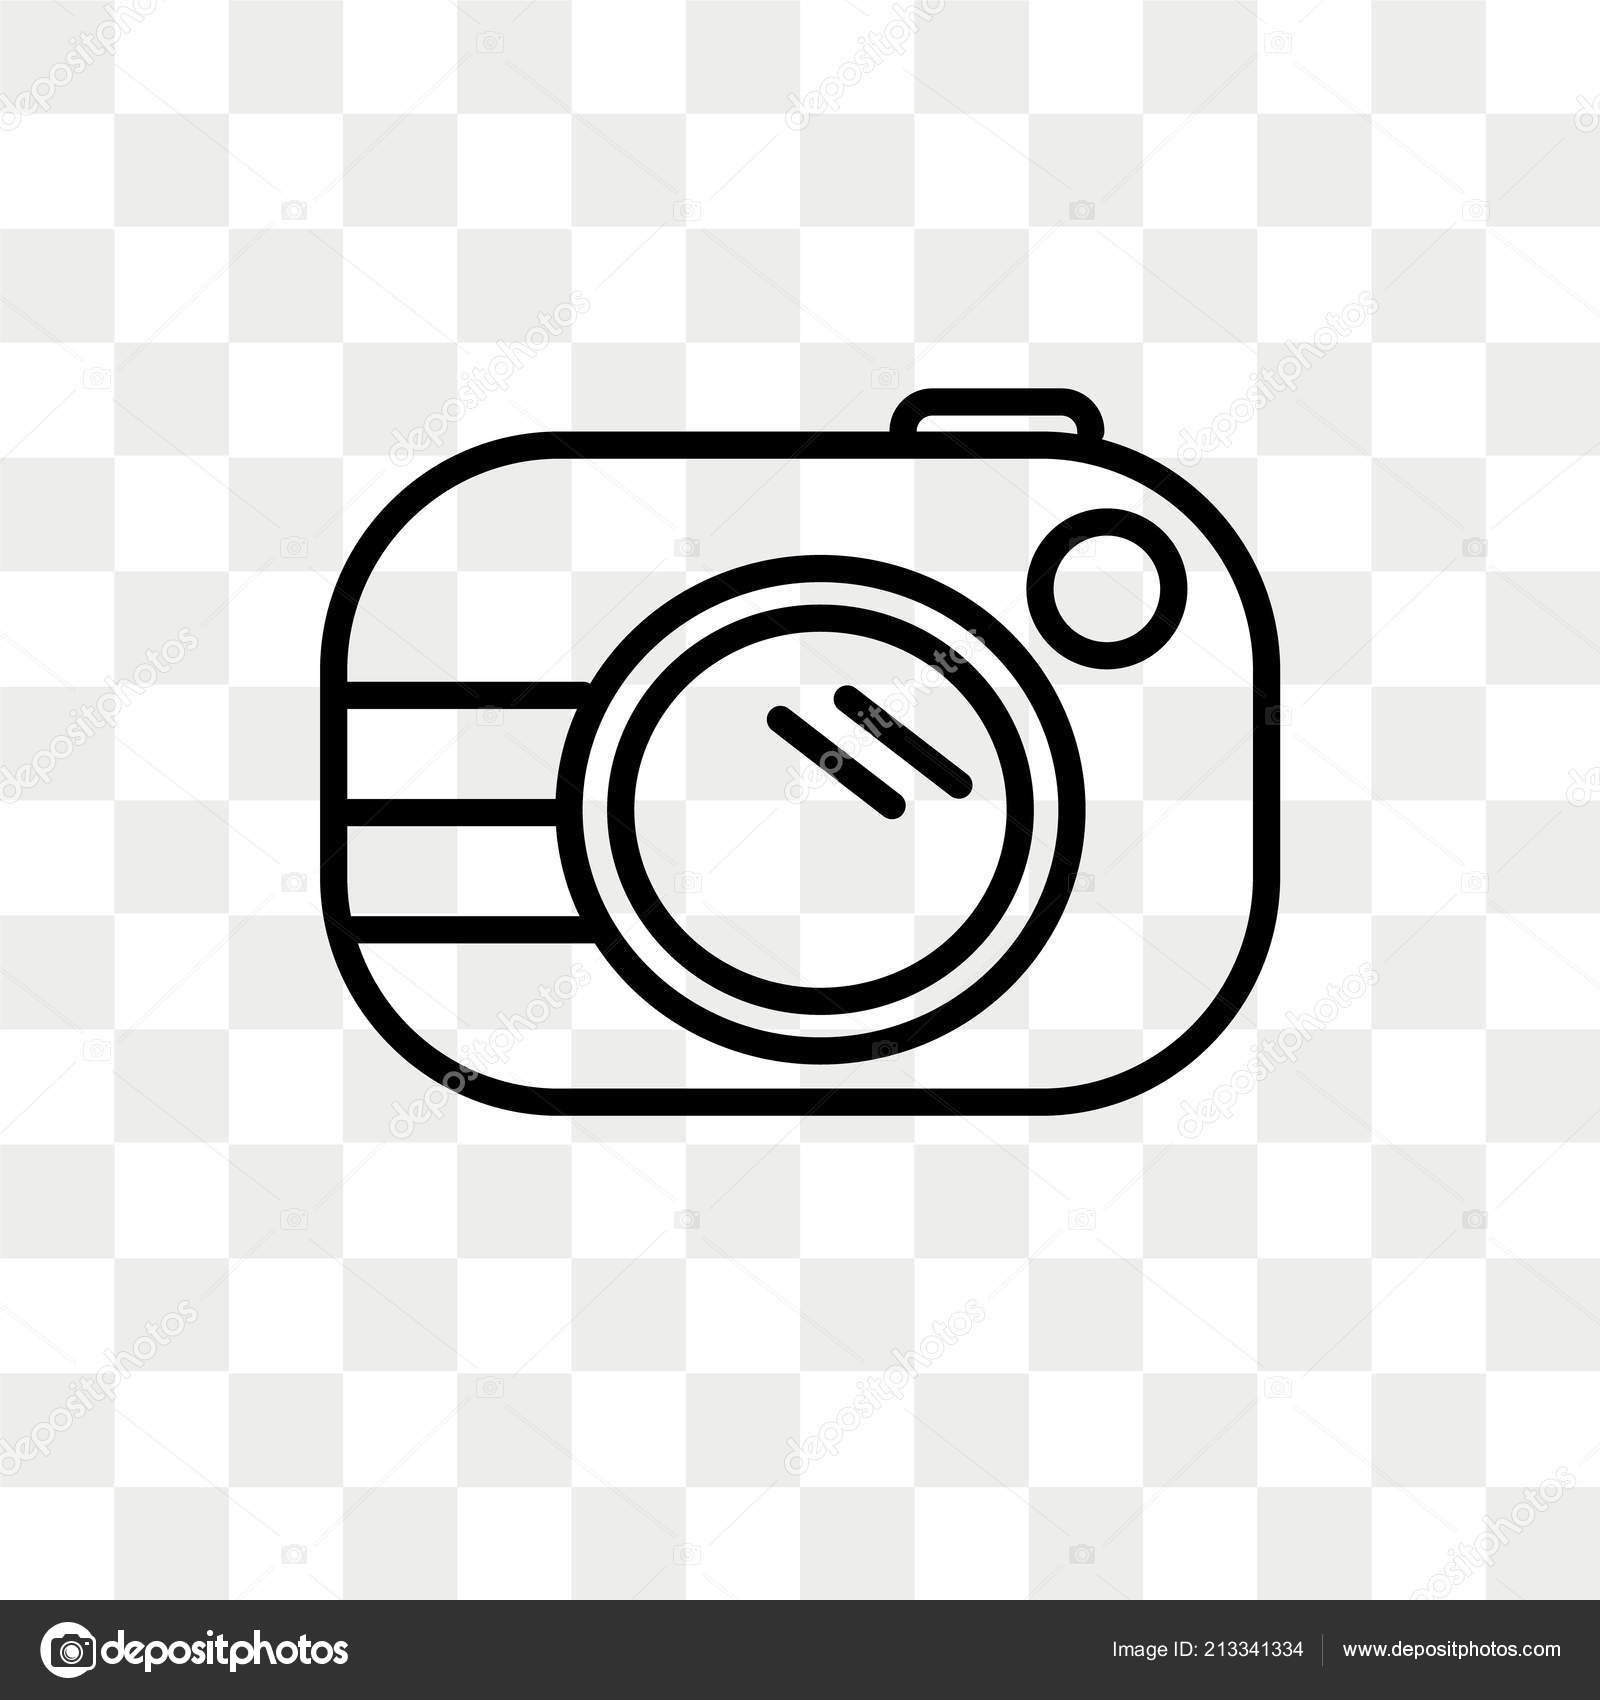 Camera Logo Png Transparent Big Photo Camera Vector Icon Isolated On Transparent Background Big Photo Camera Logo Design Stock Vector C Vectorstockcompany 213341334